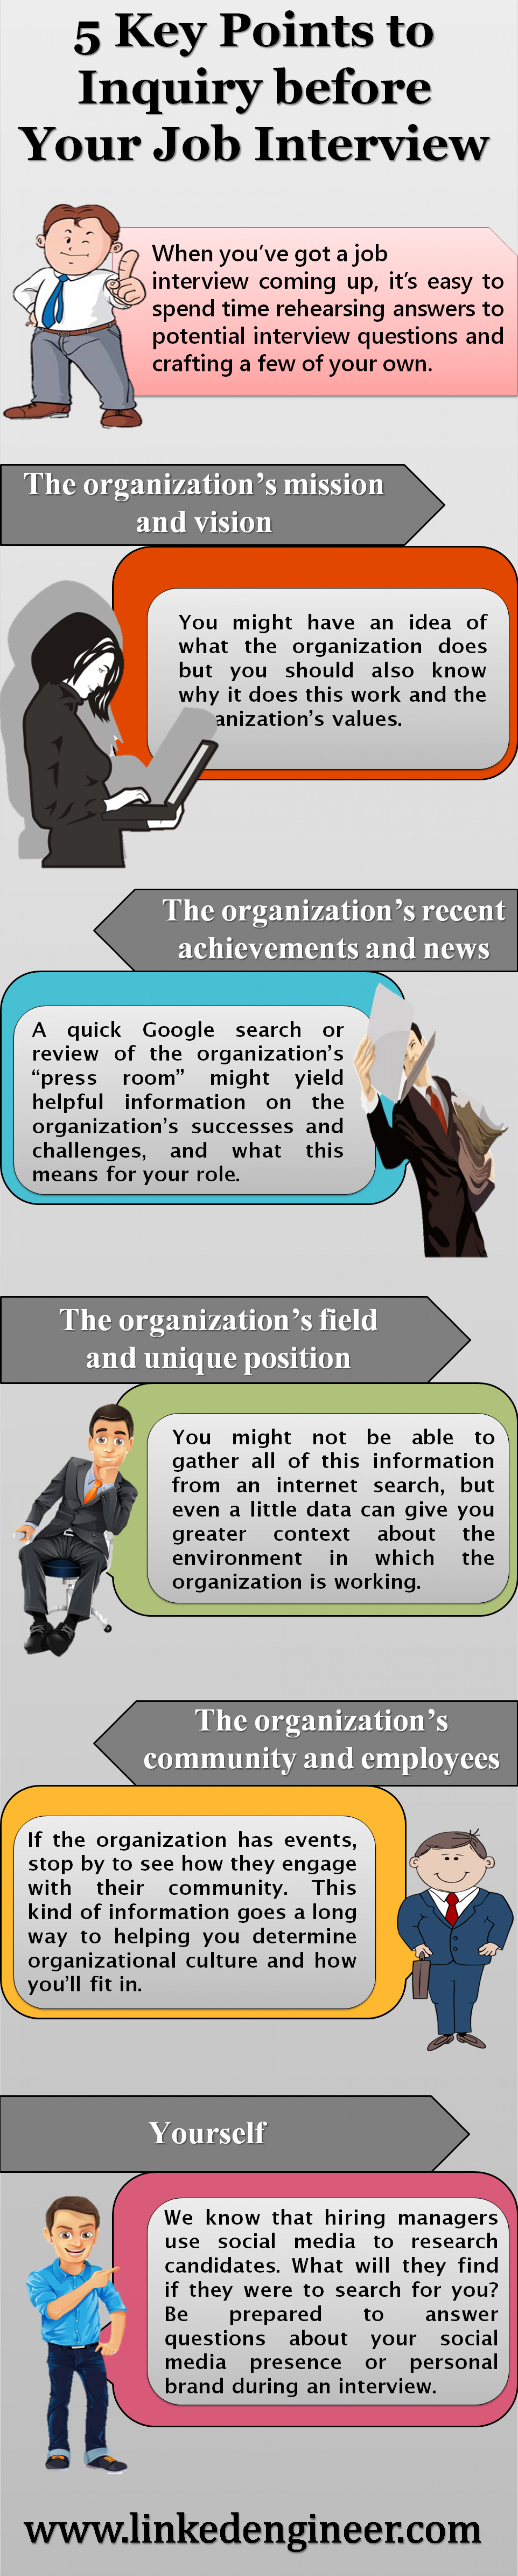 key points to inquiry before your job interview ly 5 key points to inquiry before your job interview infographic